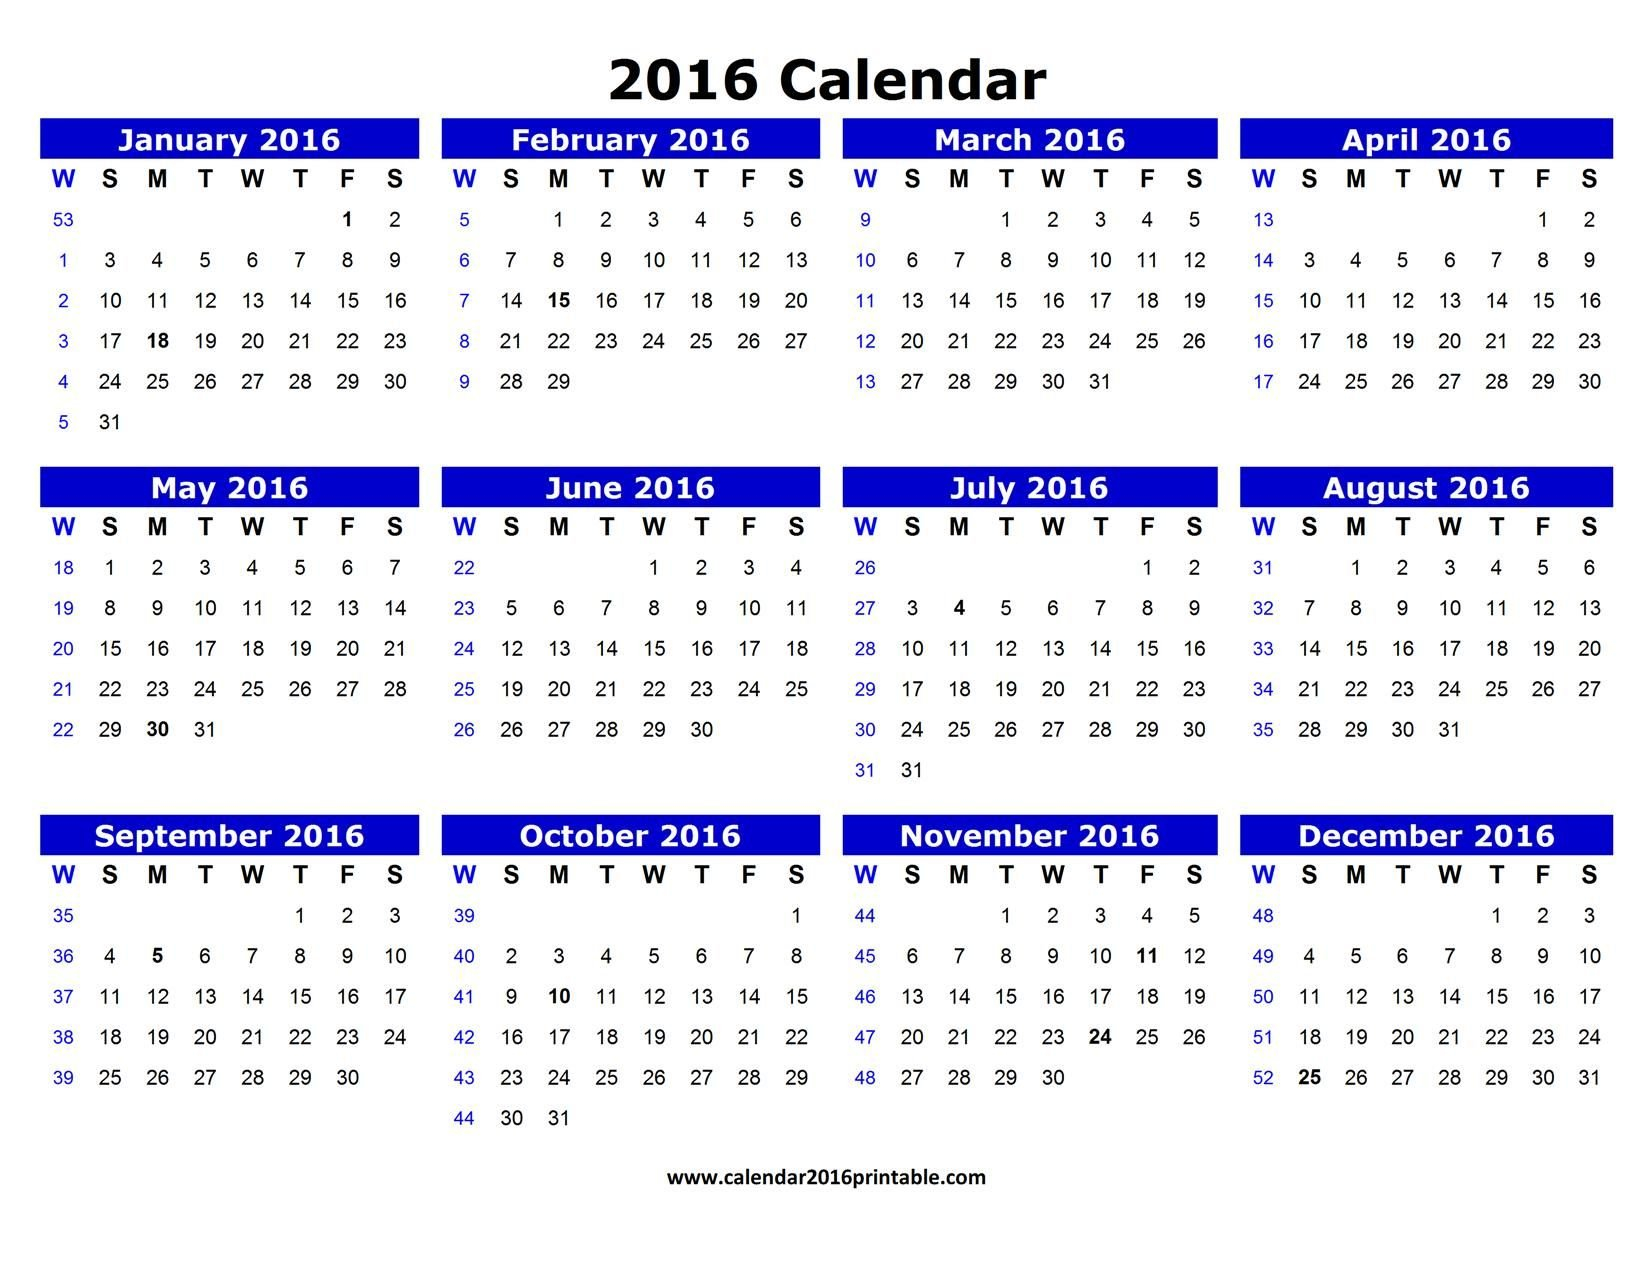 Free 2016 Calendar Pdf That You Can Download, Customize Printable Calenders You Can Edit